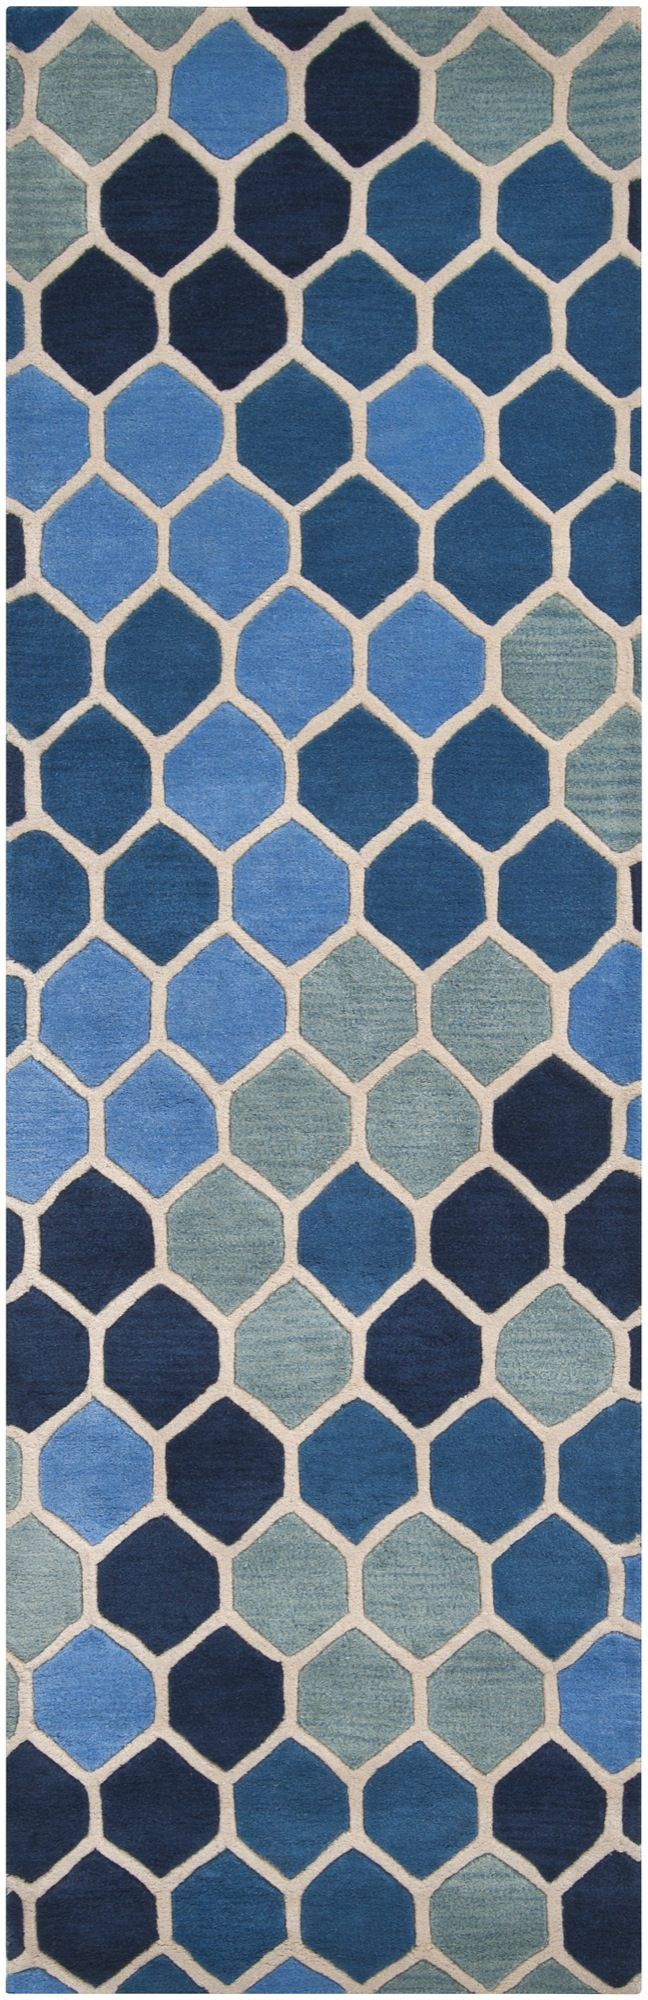 surya paule marrot contemporary area rug collection